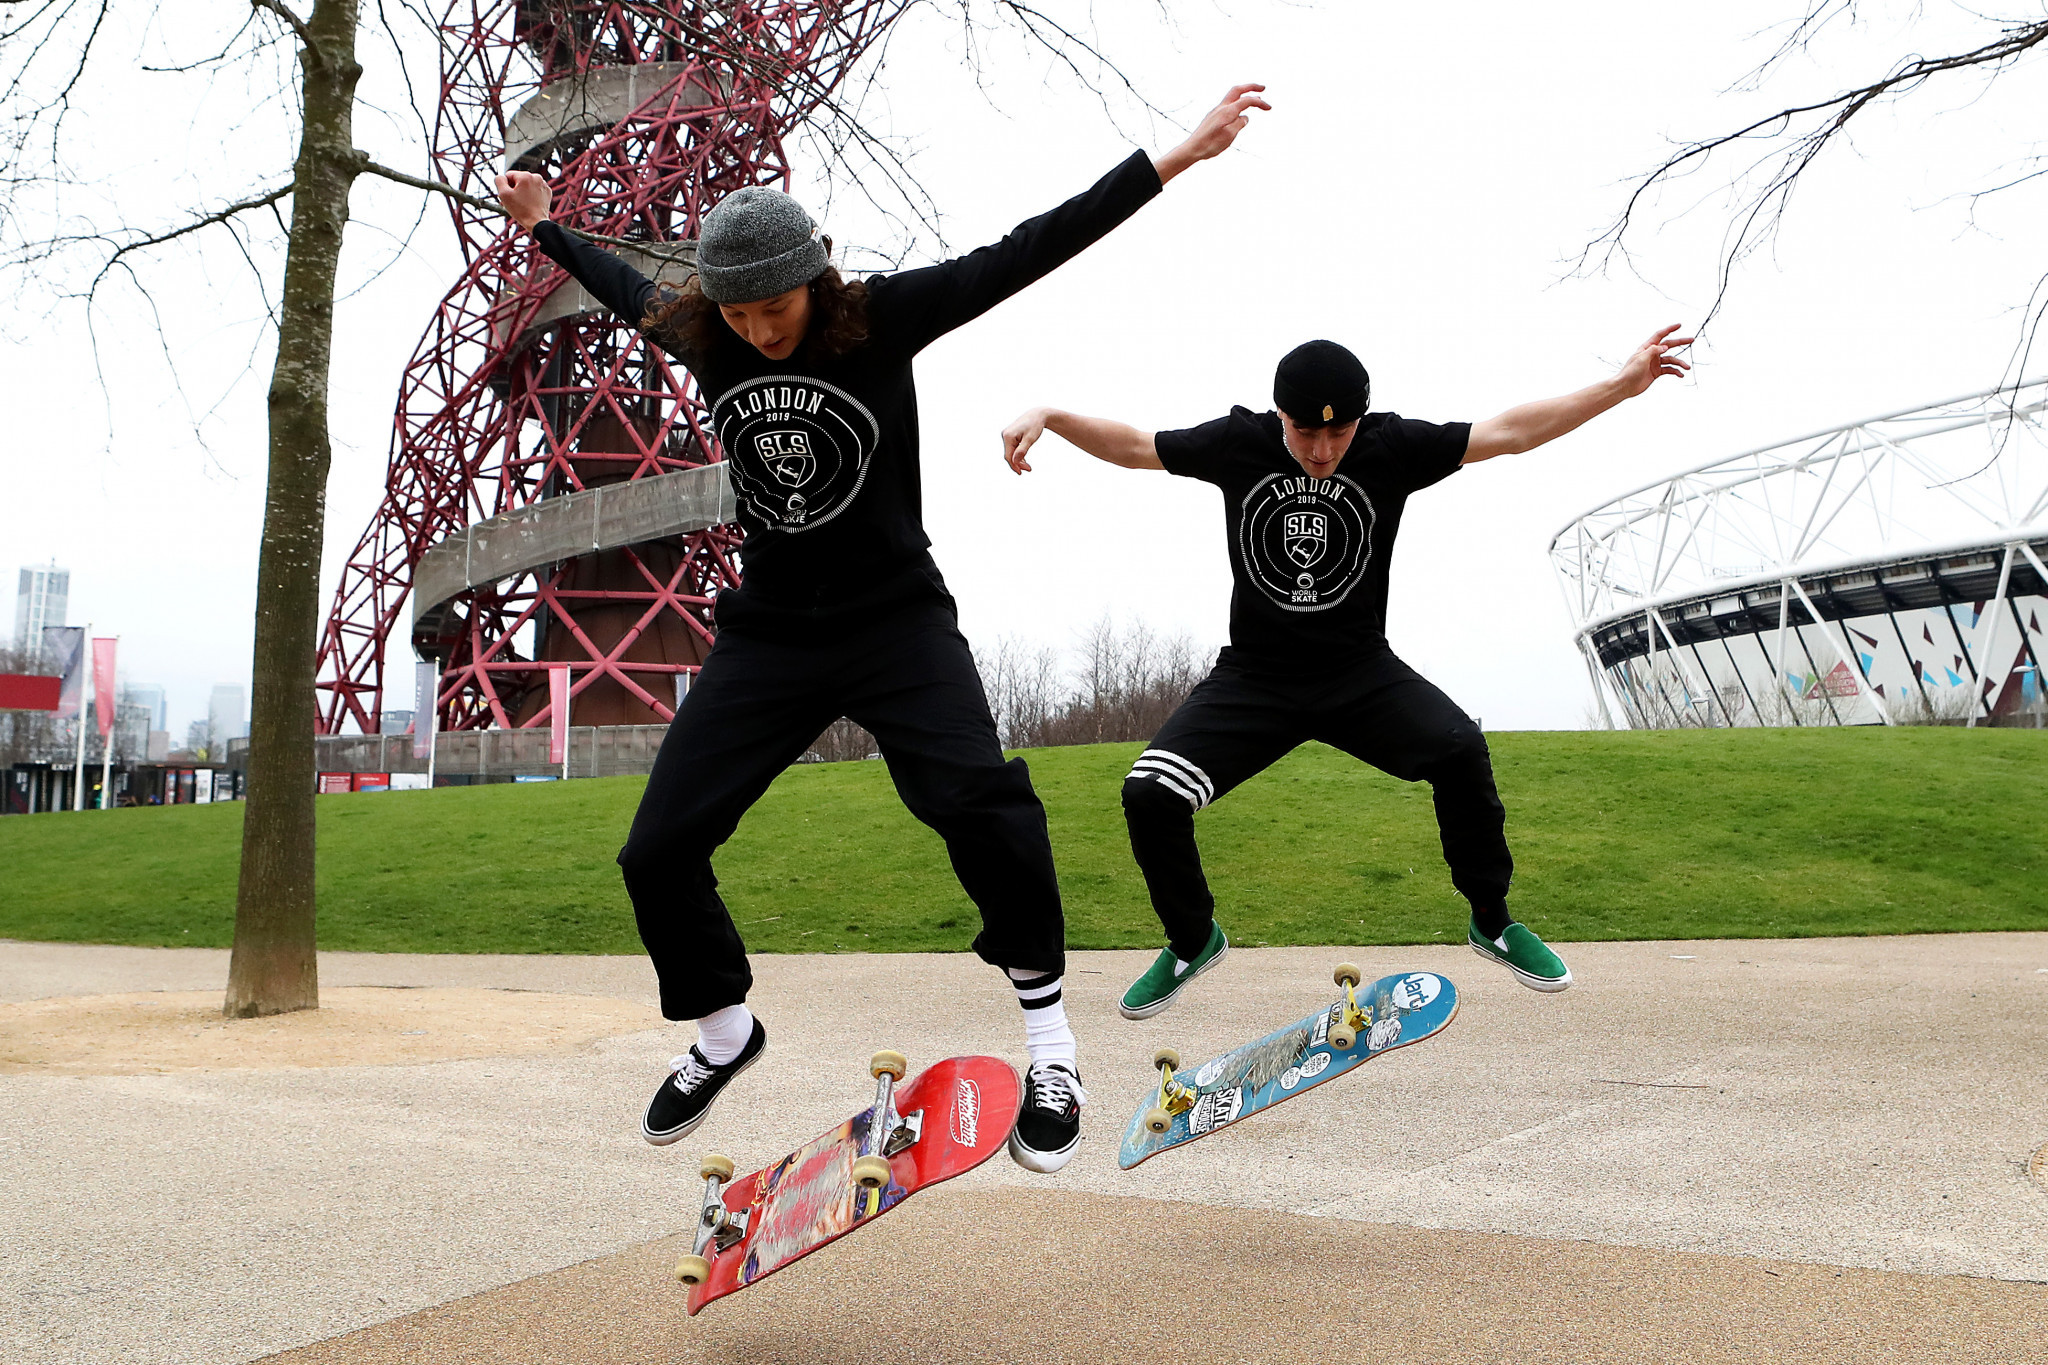 Skateboarding is set to make its debut on the Olympic programme at Tokyo 2020 ©Getty Images